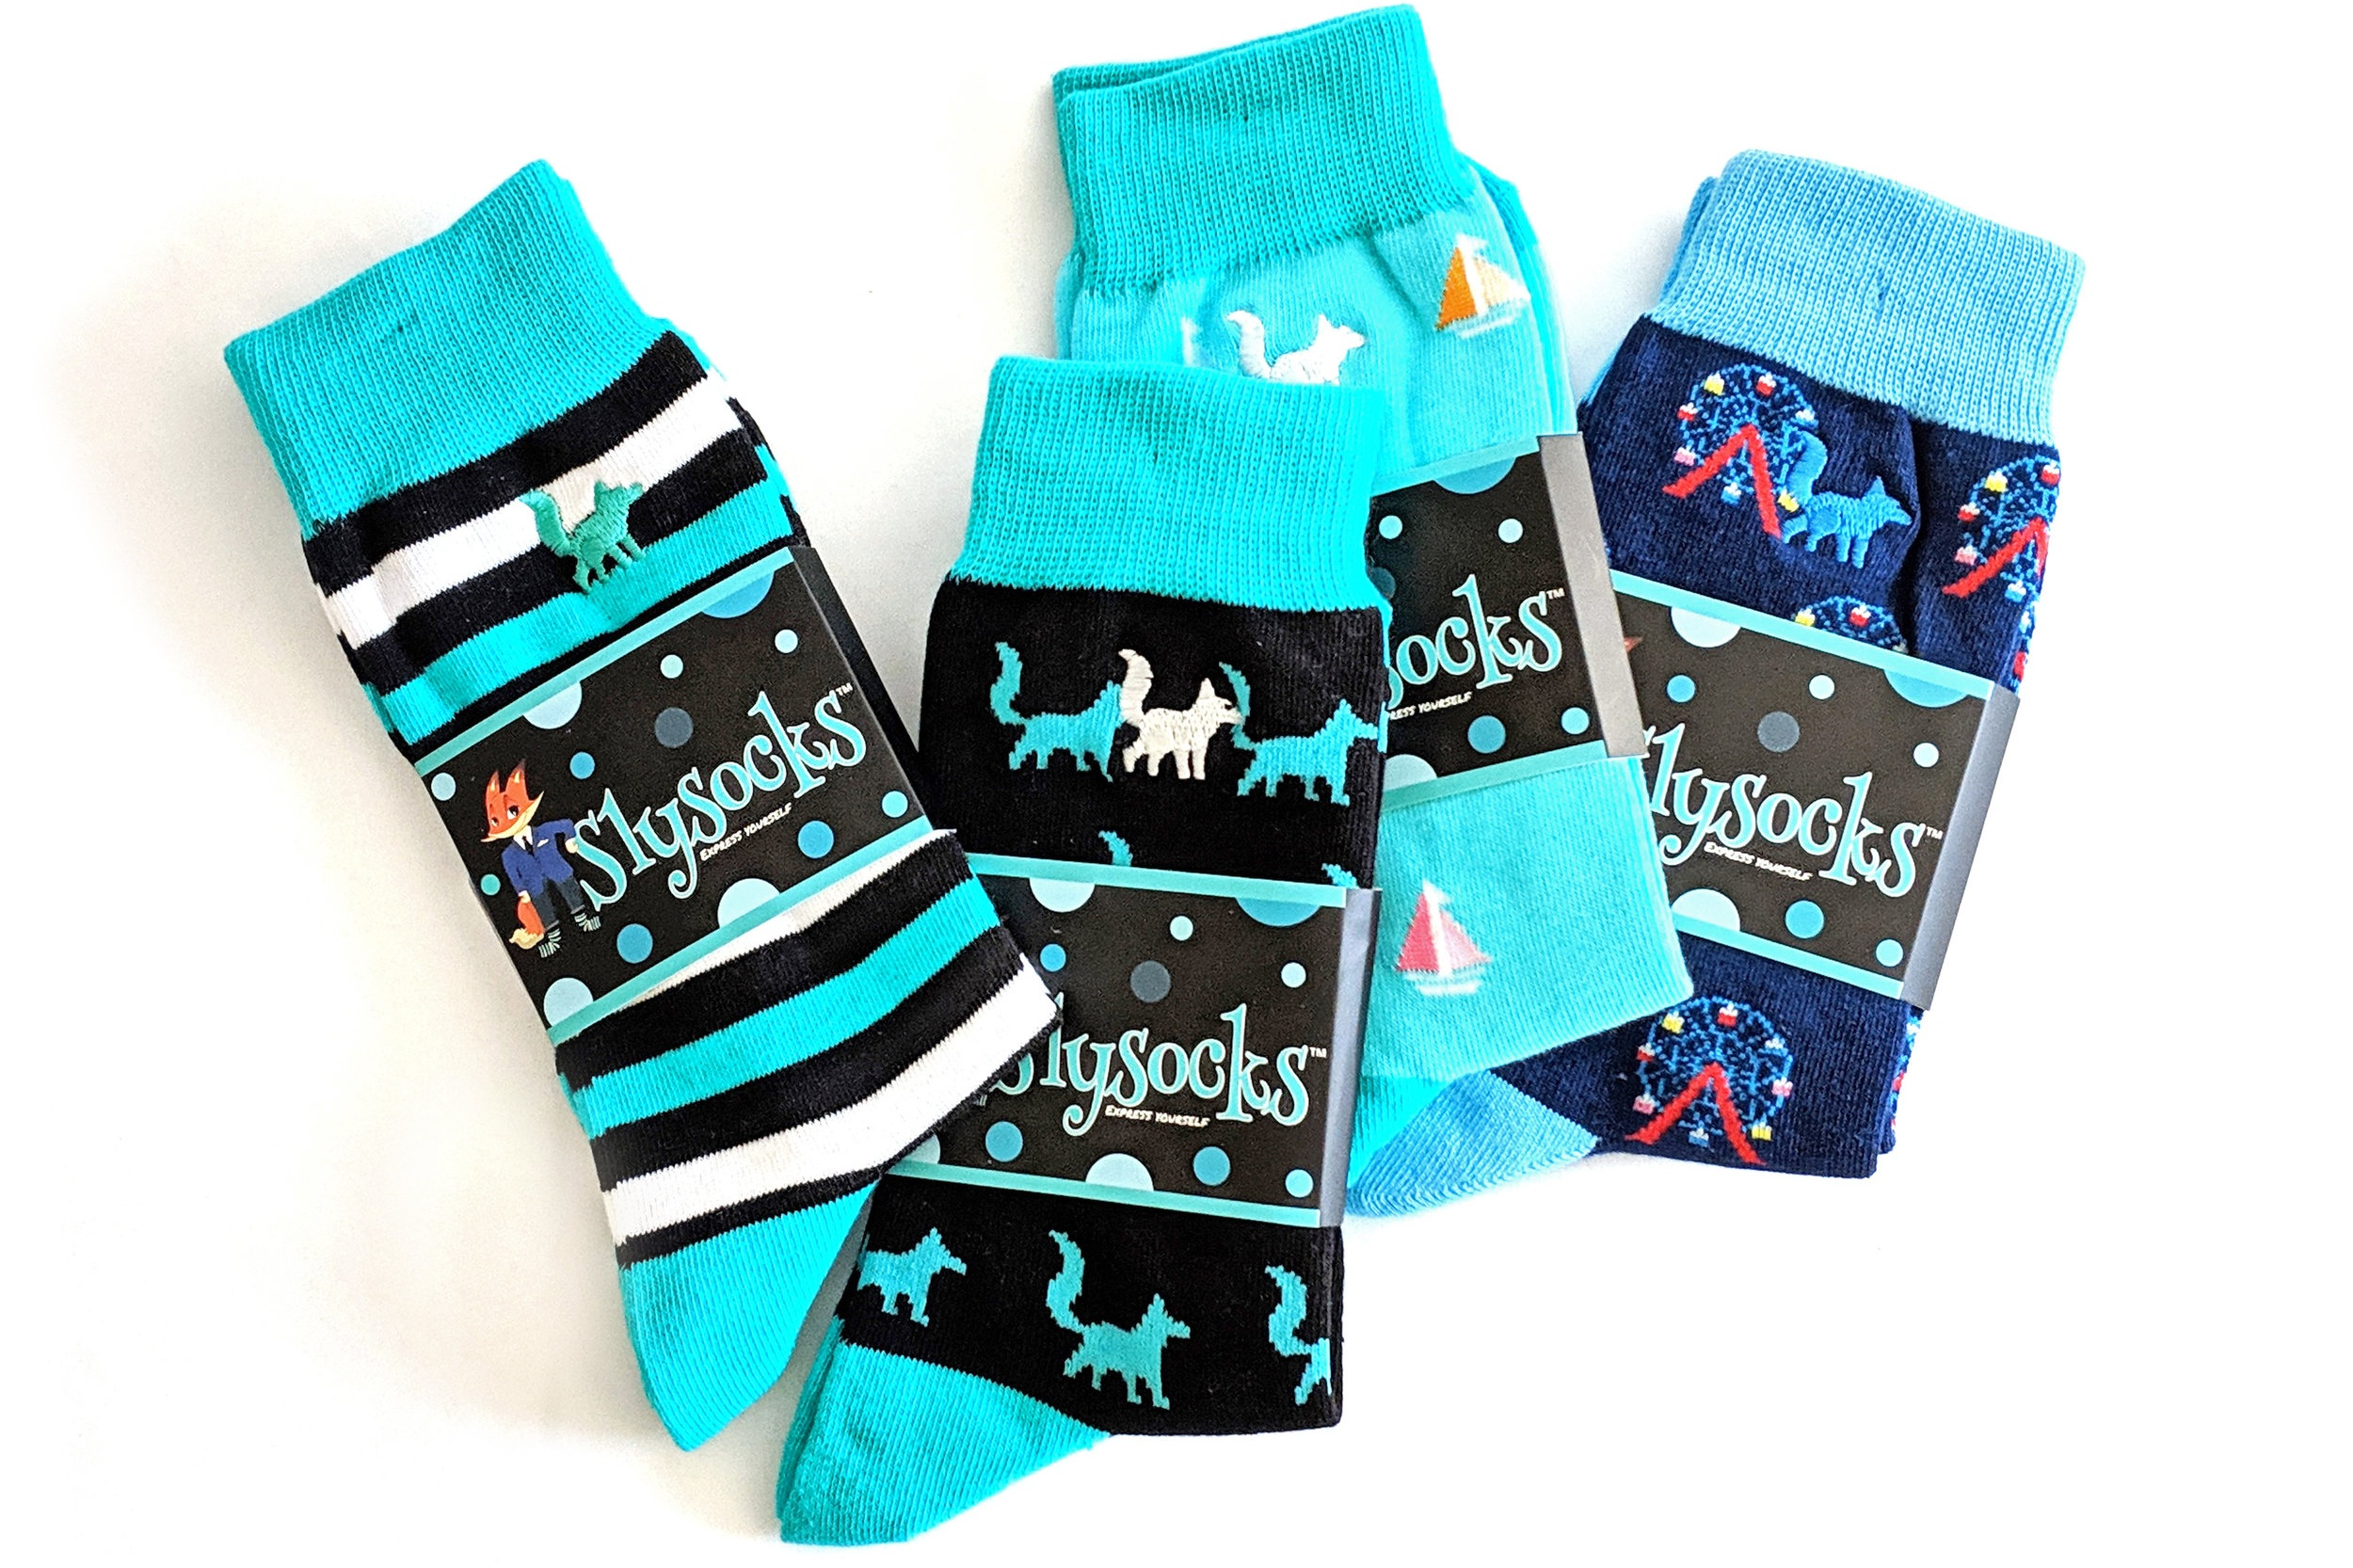 A Set of Superbly-Stylish SlySocks! Add a splash of color into your sock drawer - those foxes are looking fabulous!